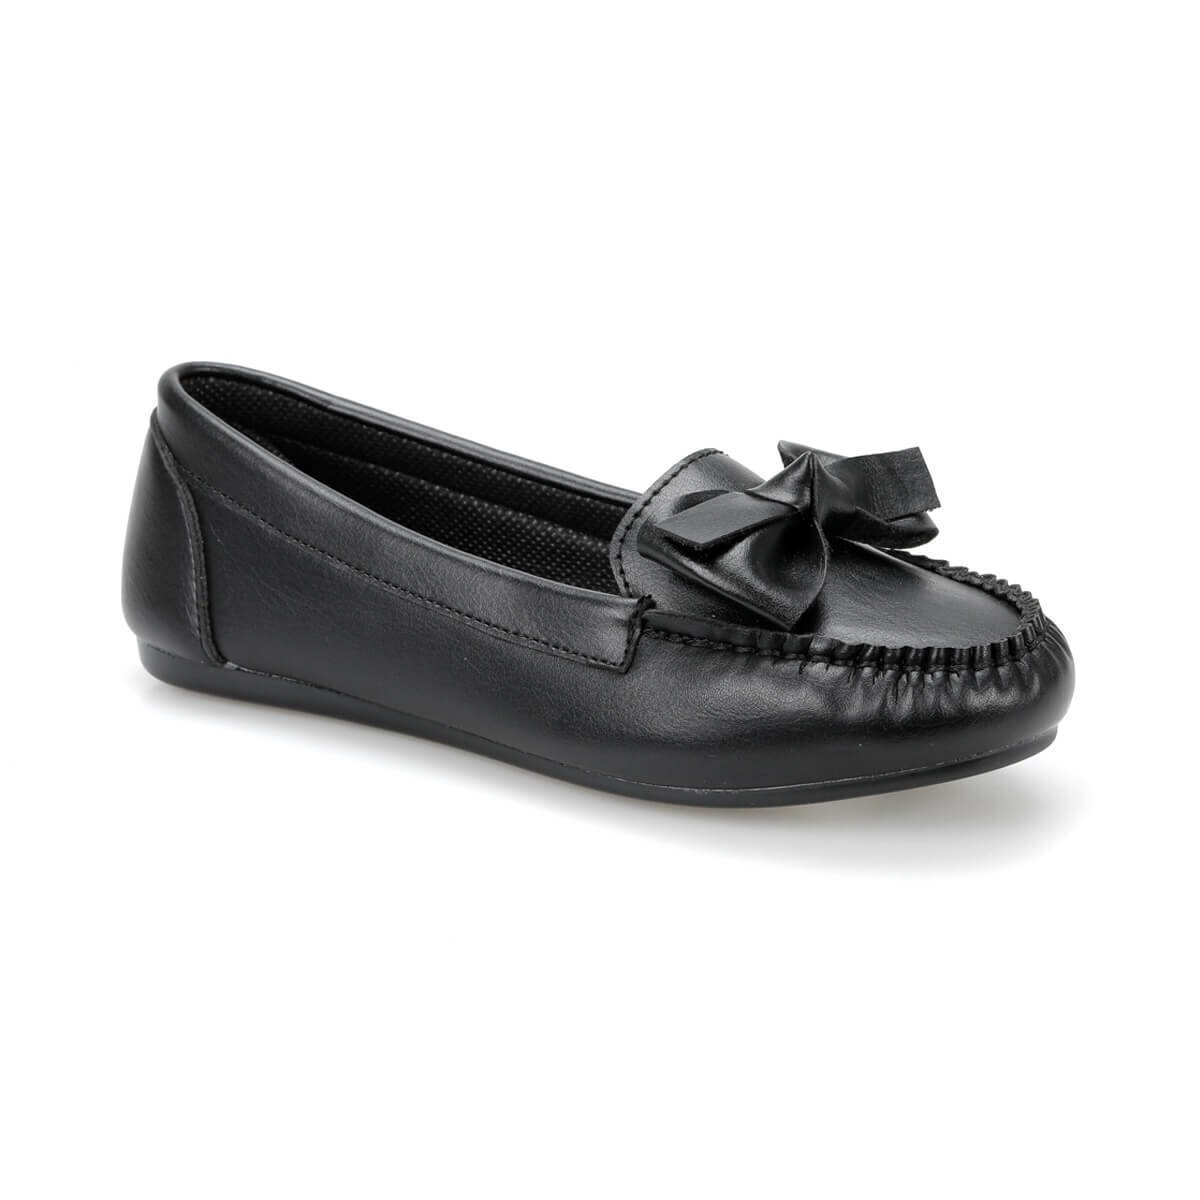 FLO DS19028 Black Women Loafer Shoes Miss F